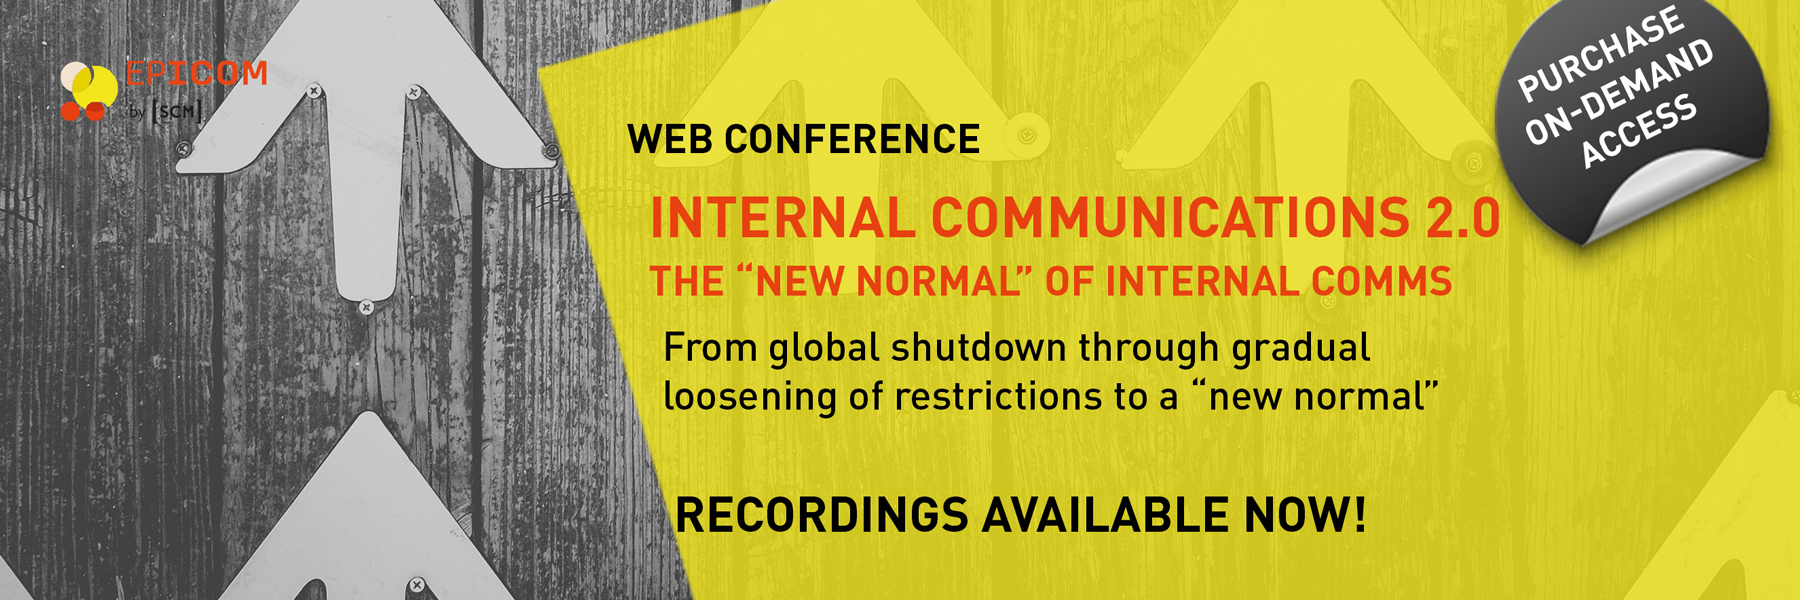 Web conference on demand access